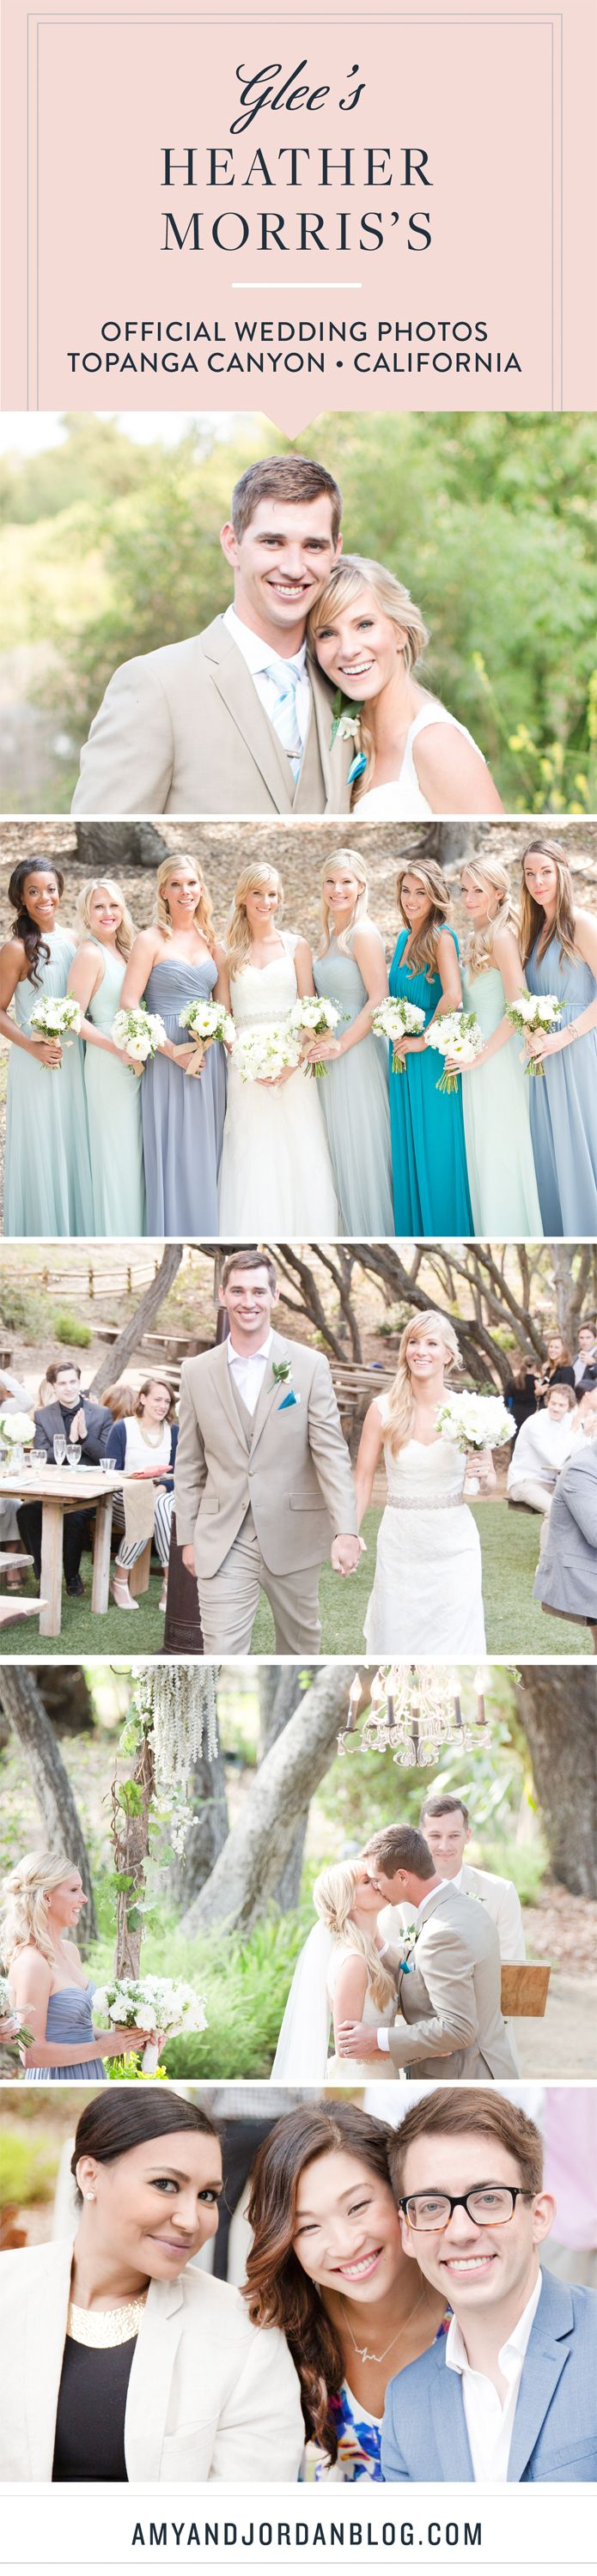 Glee's Heather Morris gets married at a lush Southern California Ranch.